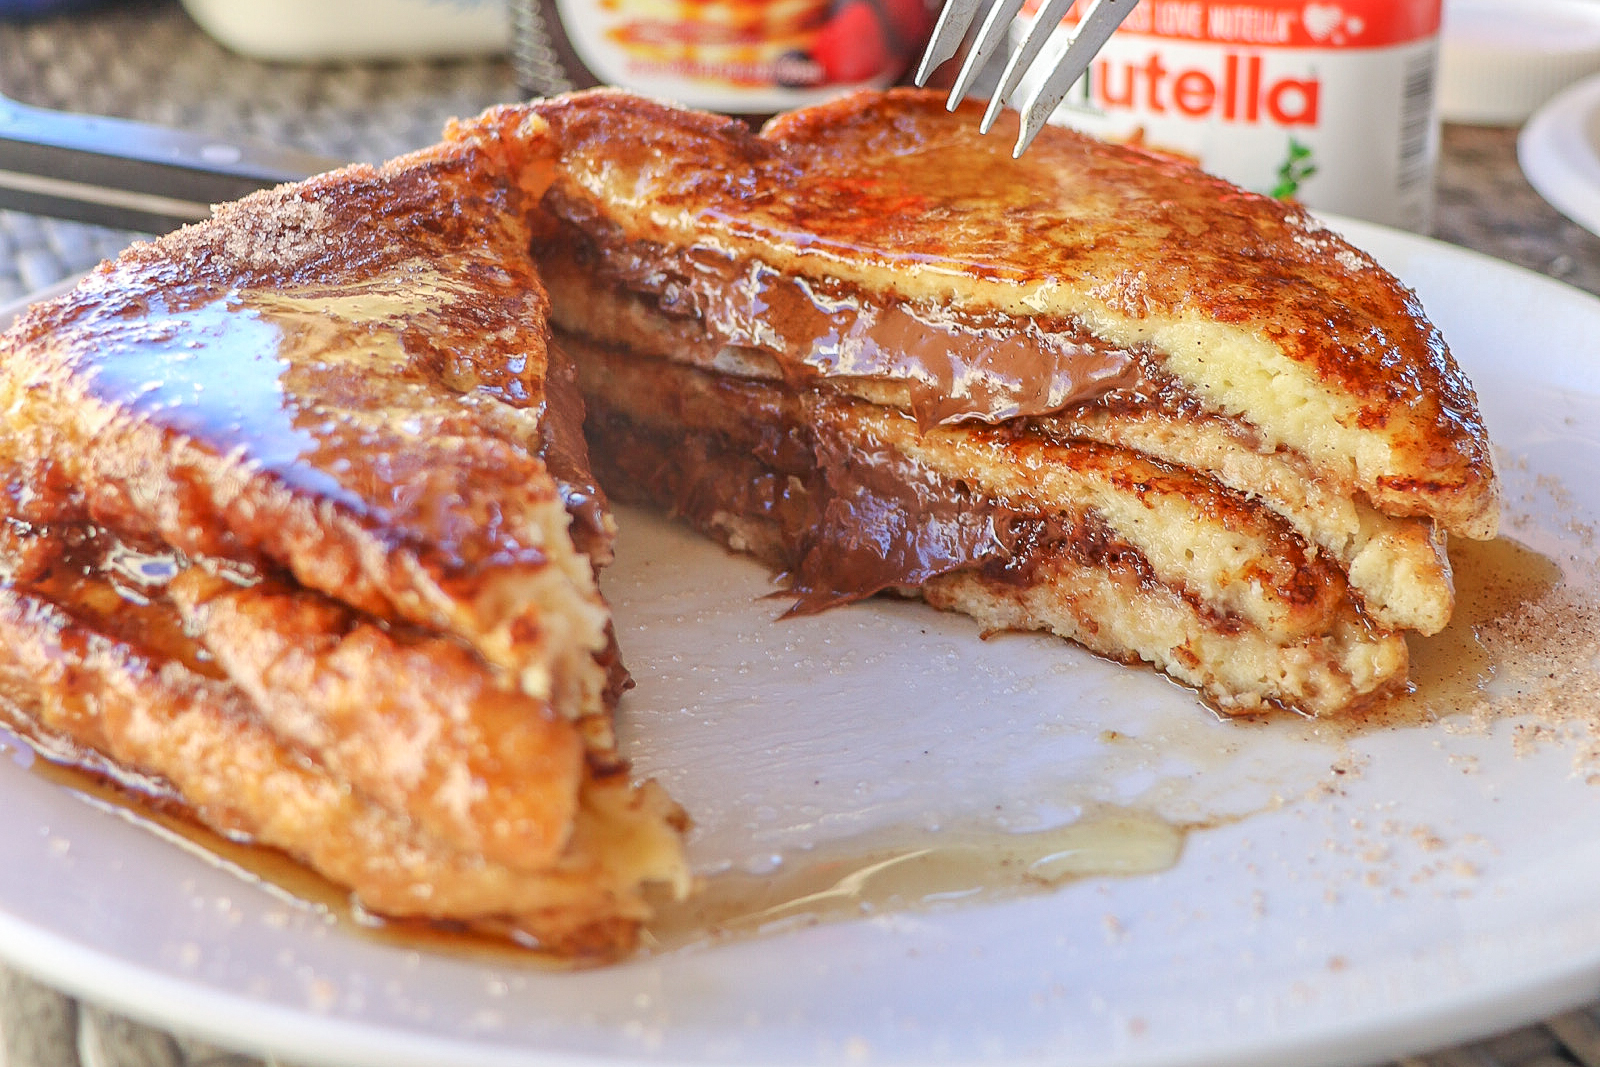 Nutella Stuffed French Toast